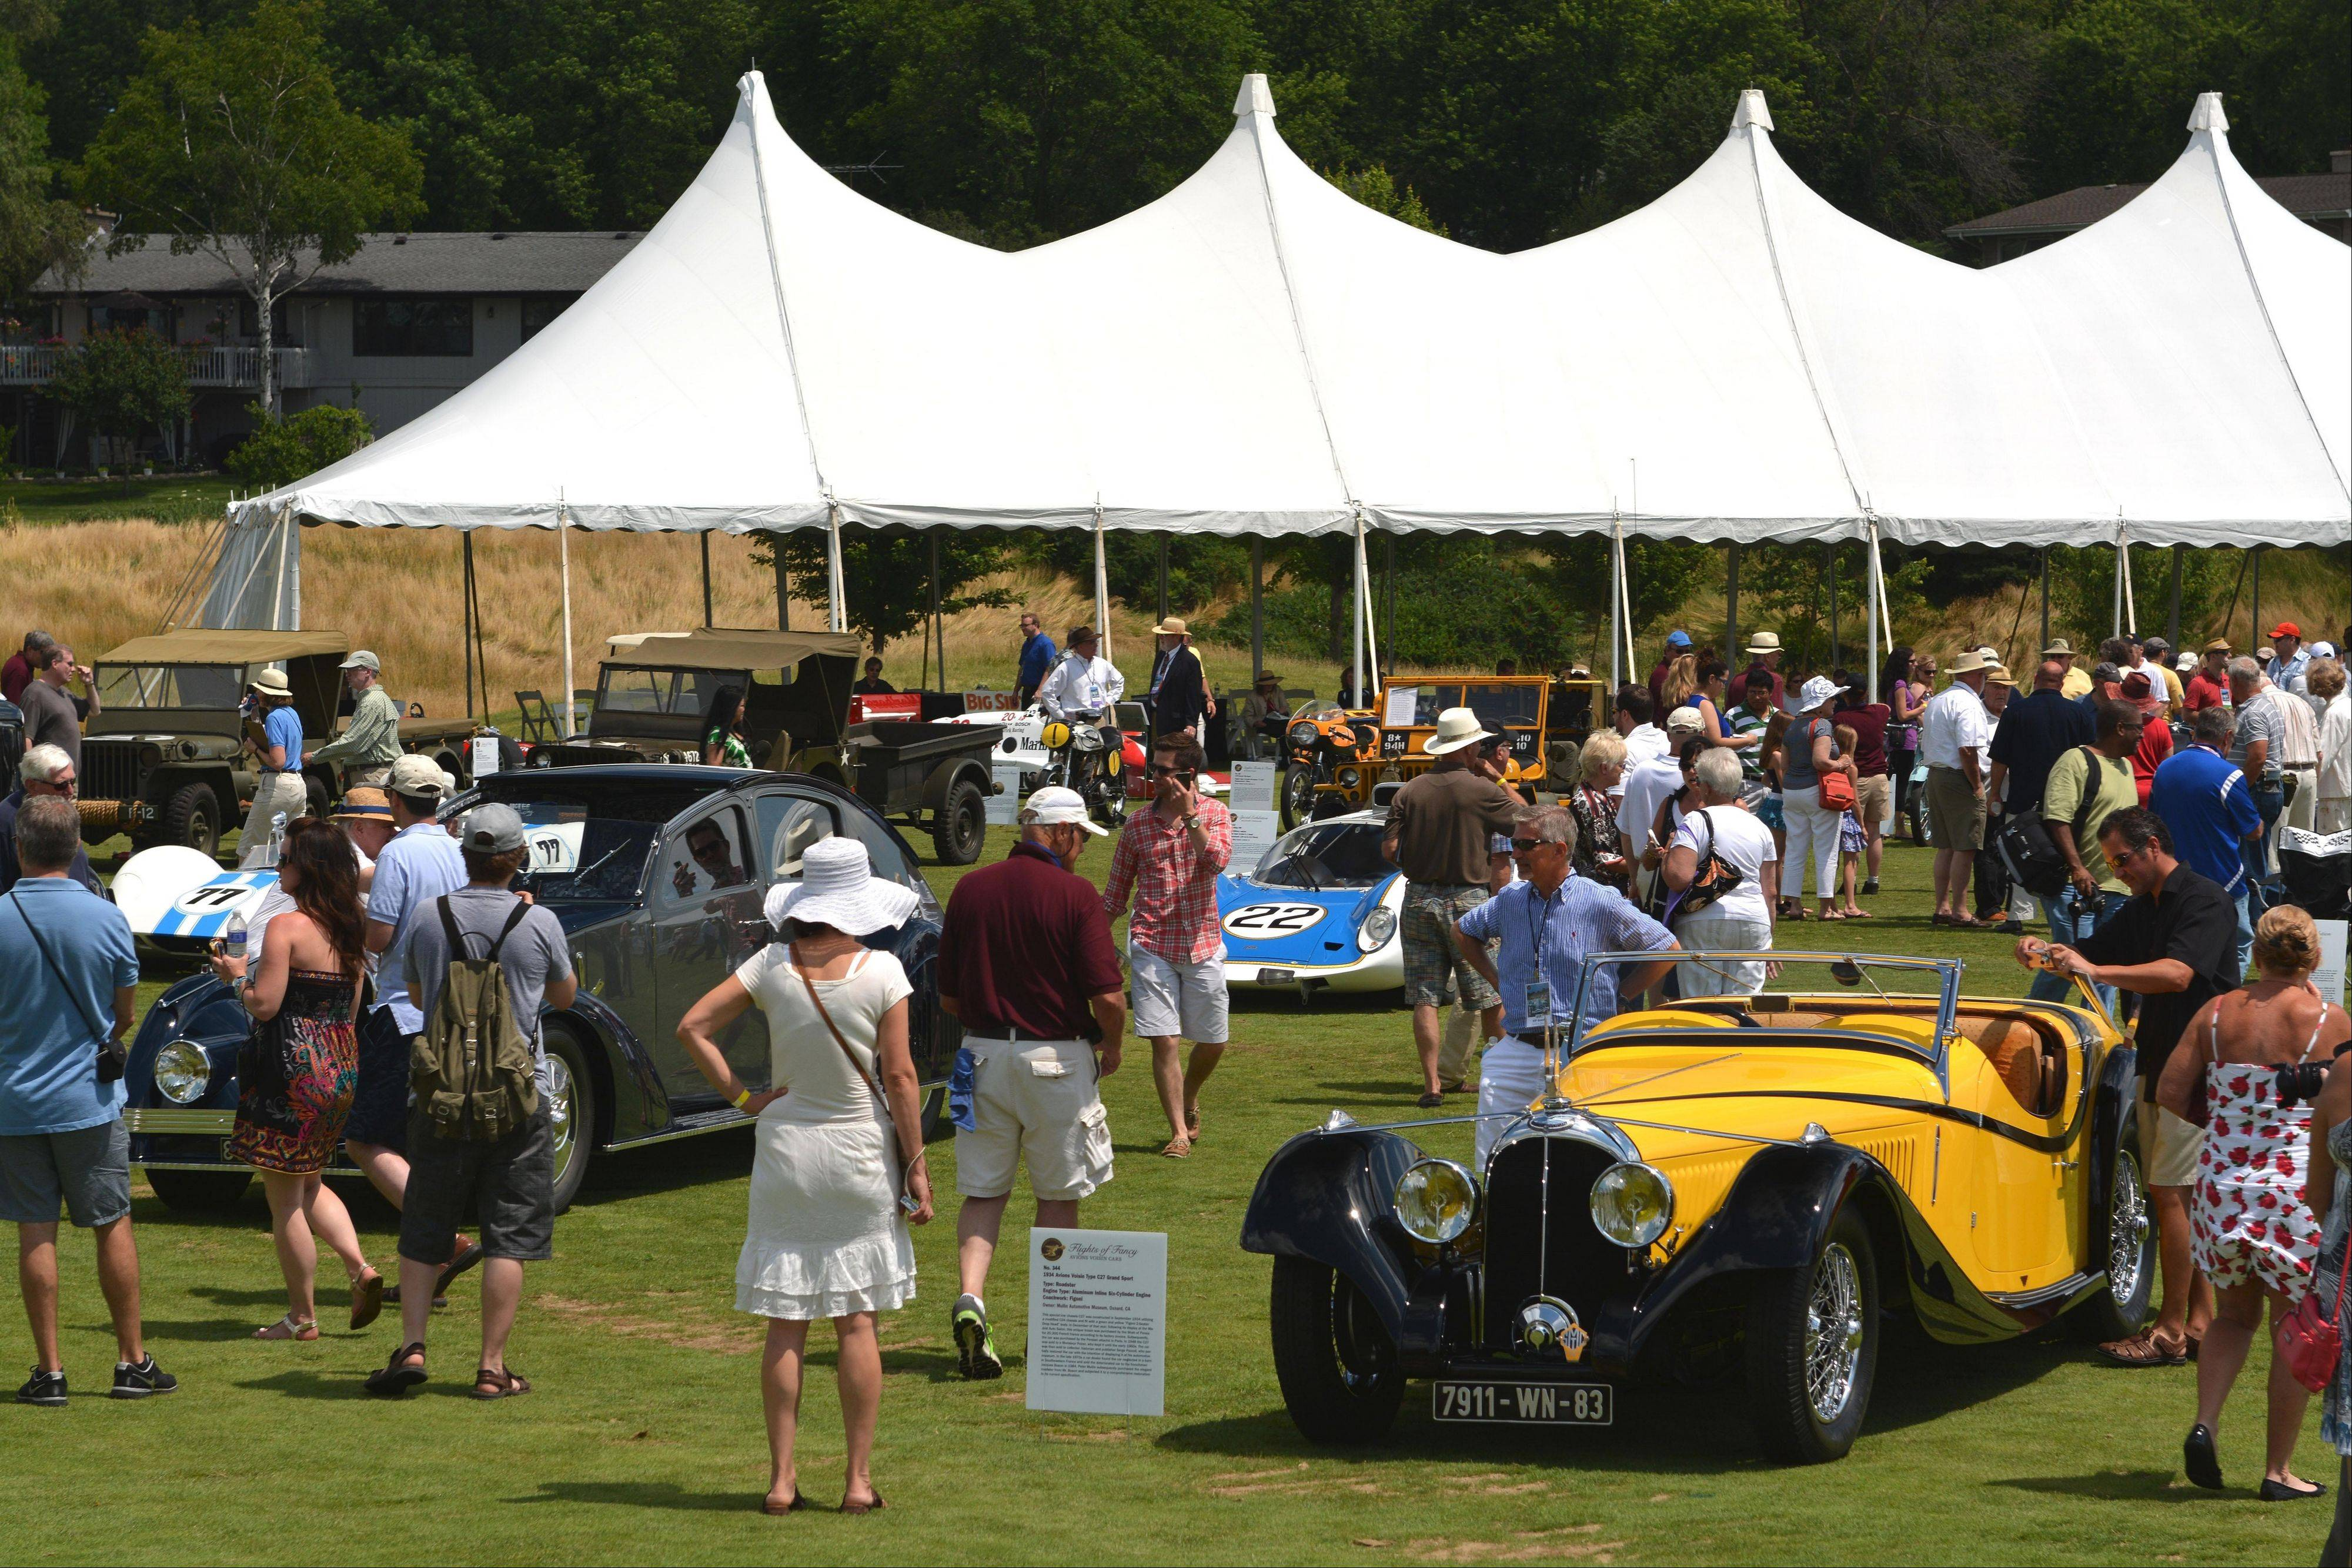 The seventh Barrington Concours D'Elegance was held July 14 at Makray Memorial Golf Club.